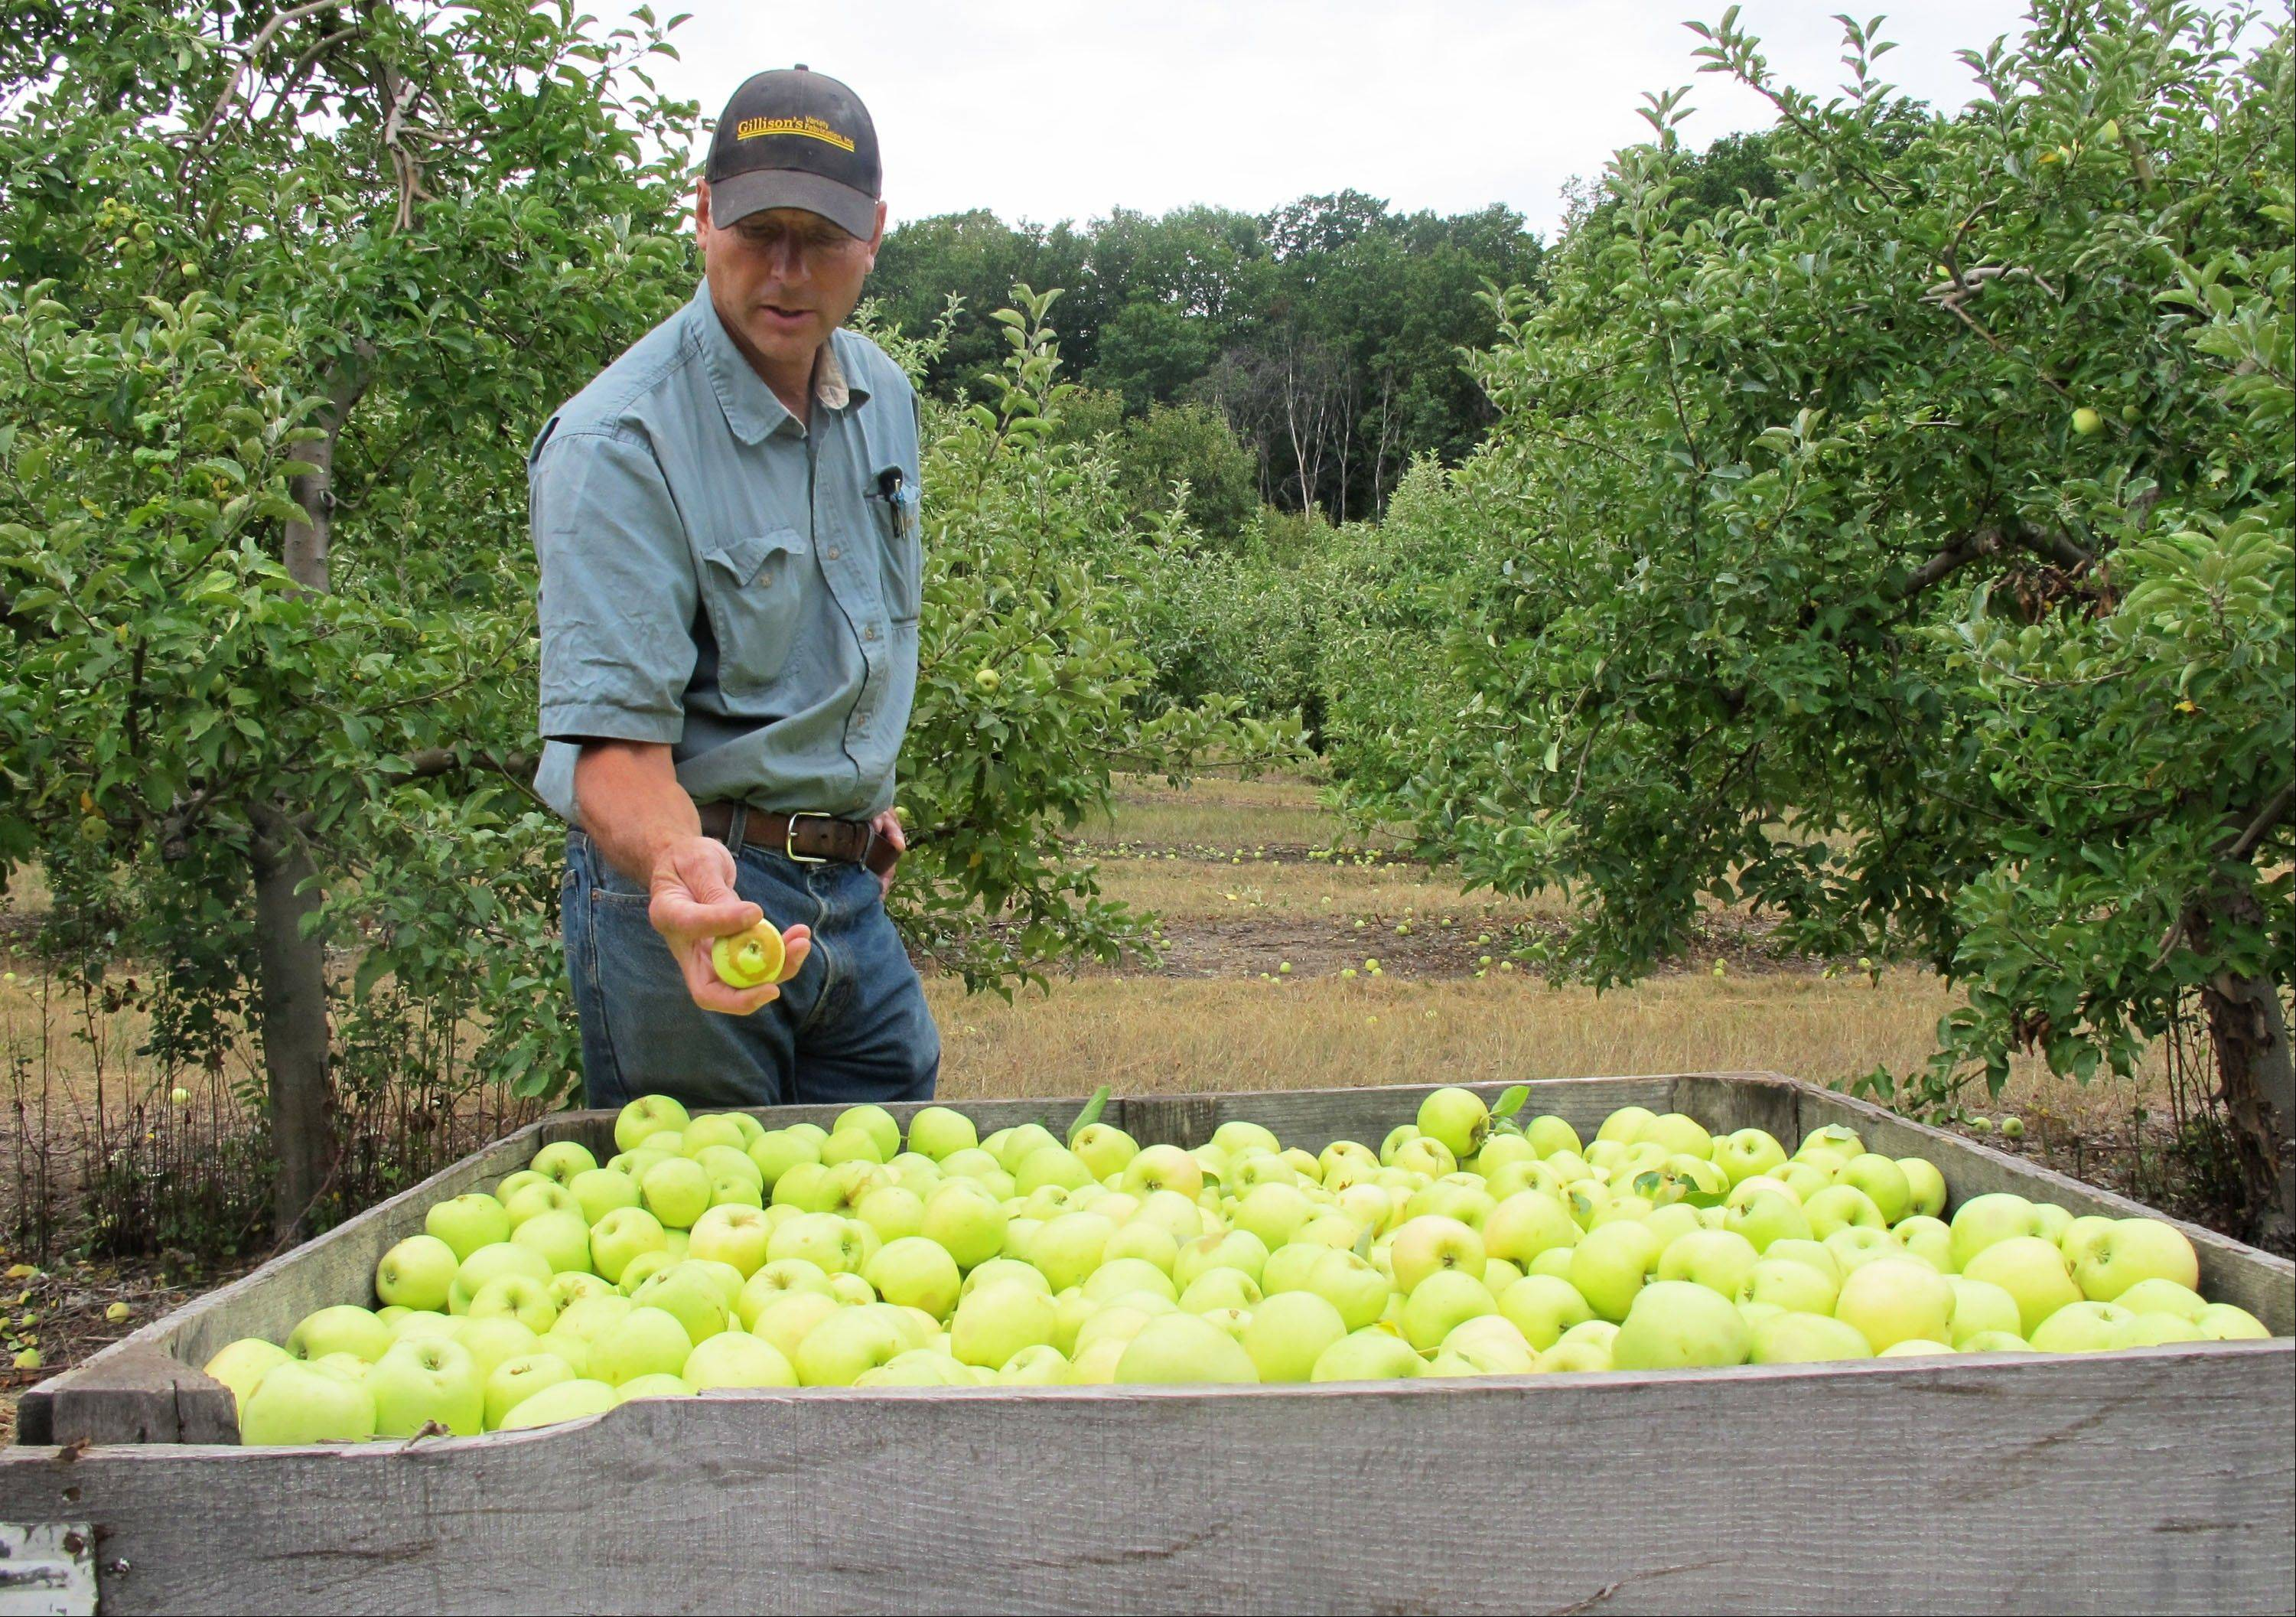 Grower Alan Spinniken examines a bin filled with Early Gold apples in his orchard near Suttons Bay, Mich. Spinniken lost about one-third of his crop because of bad weather but said he�s grateful things weren�t worse.